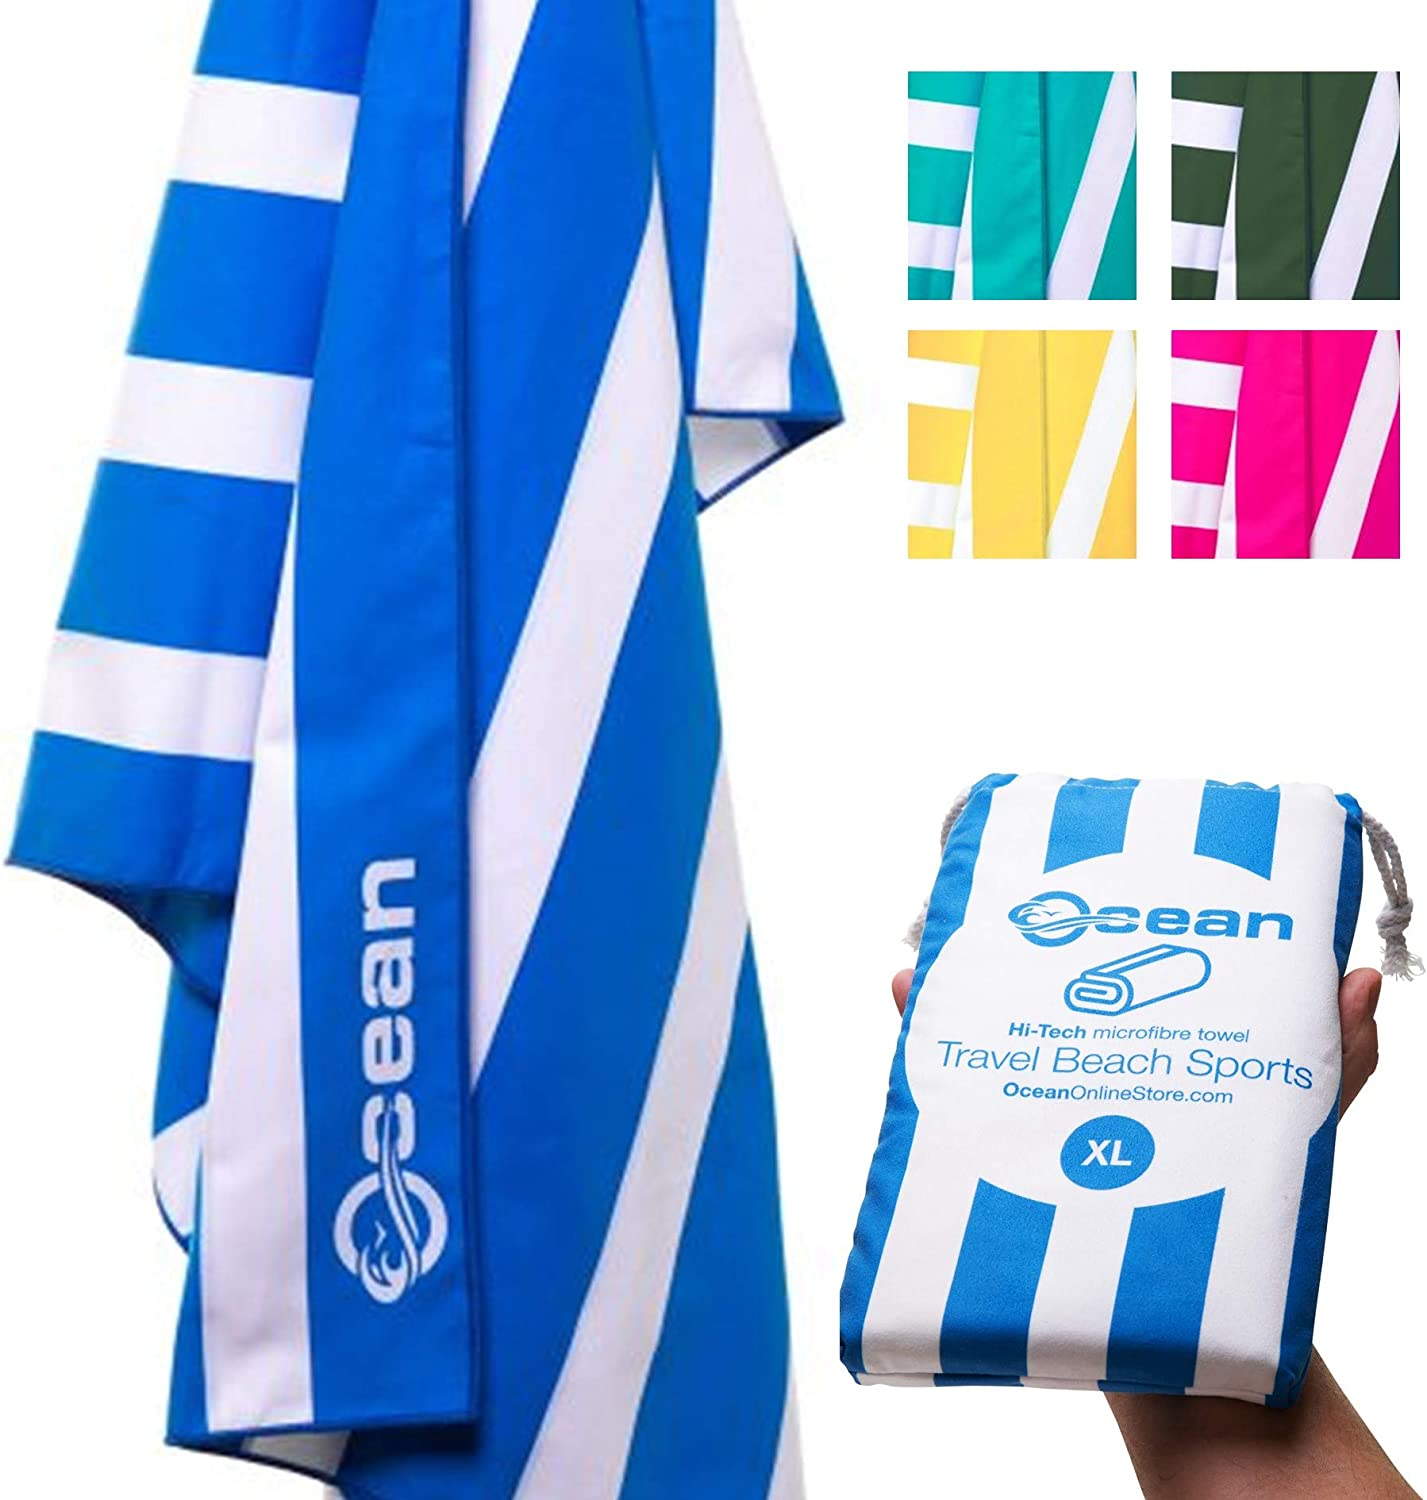 Ocean Microfiber Towel - Beach Towel - Travel Towel - Quick Dry Towel - Super Soft, Ultra Absorbent, Quick Dry, Lightweight, Compact, Ultra Sized, Sand Free, Includes Travel Pouch